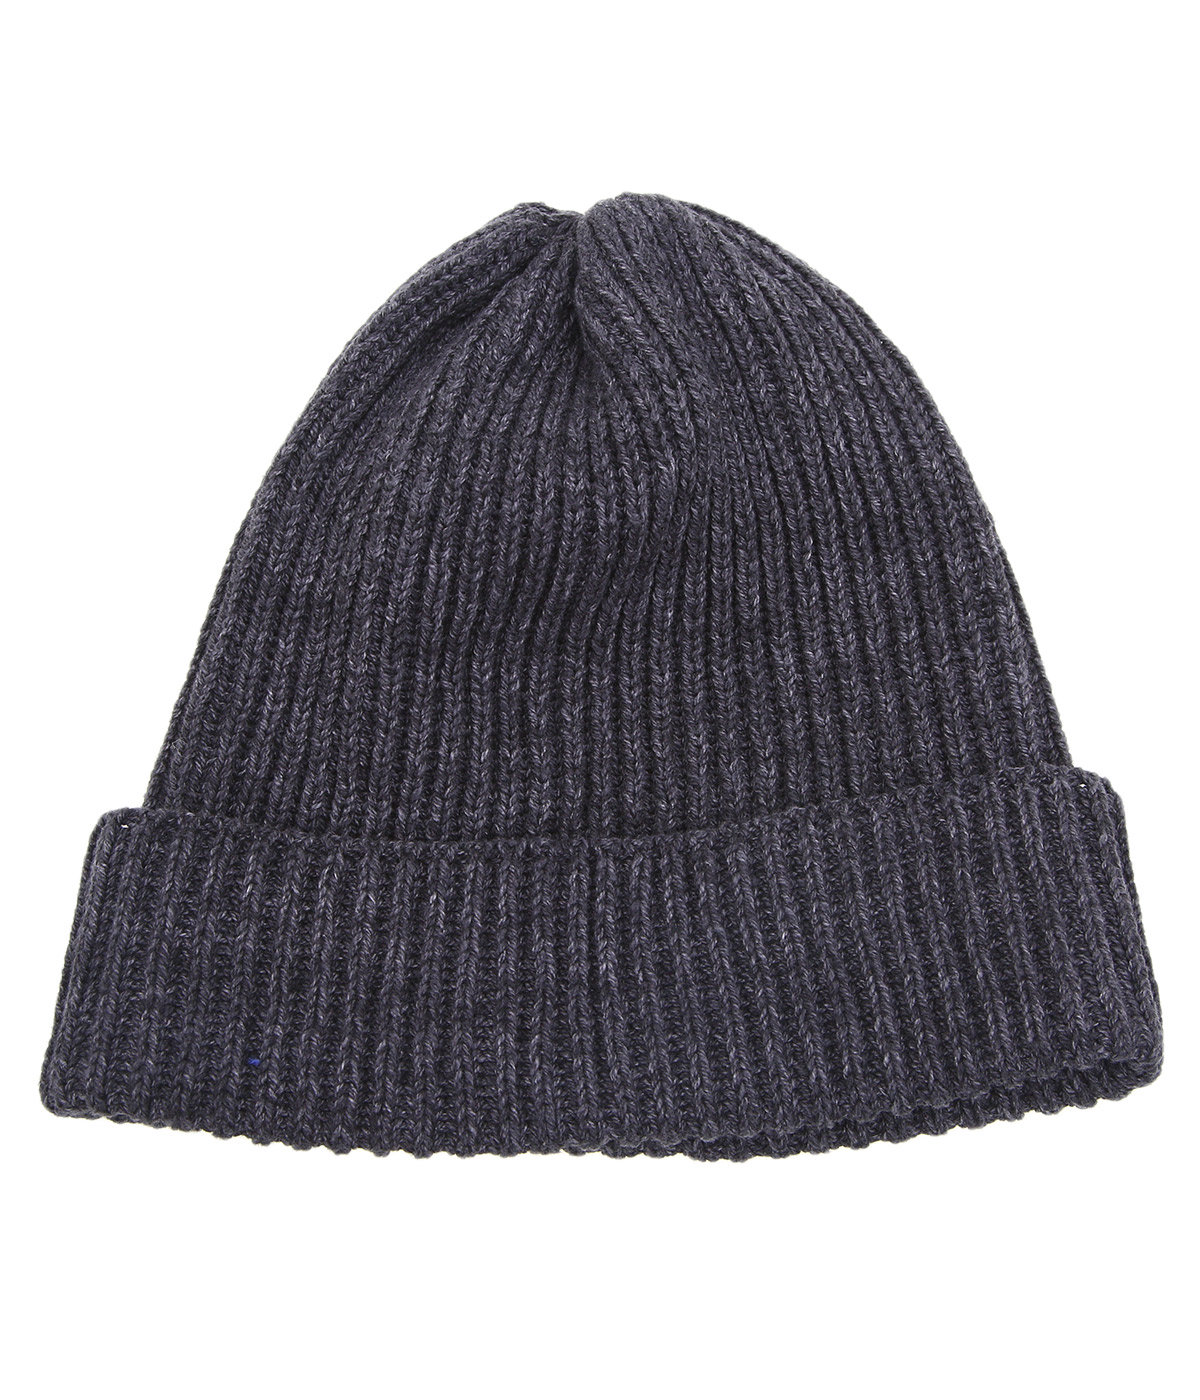 KNIT CAP CO.H